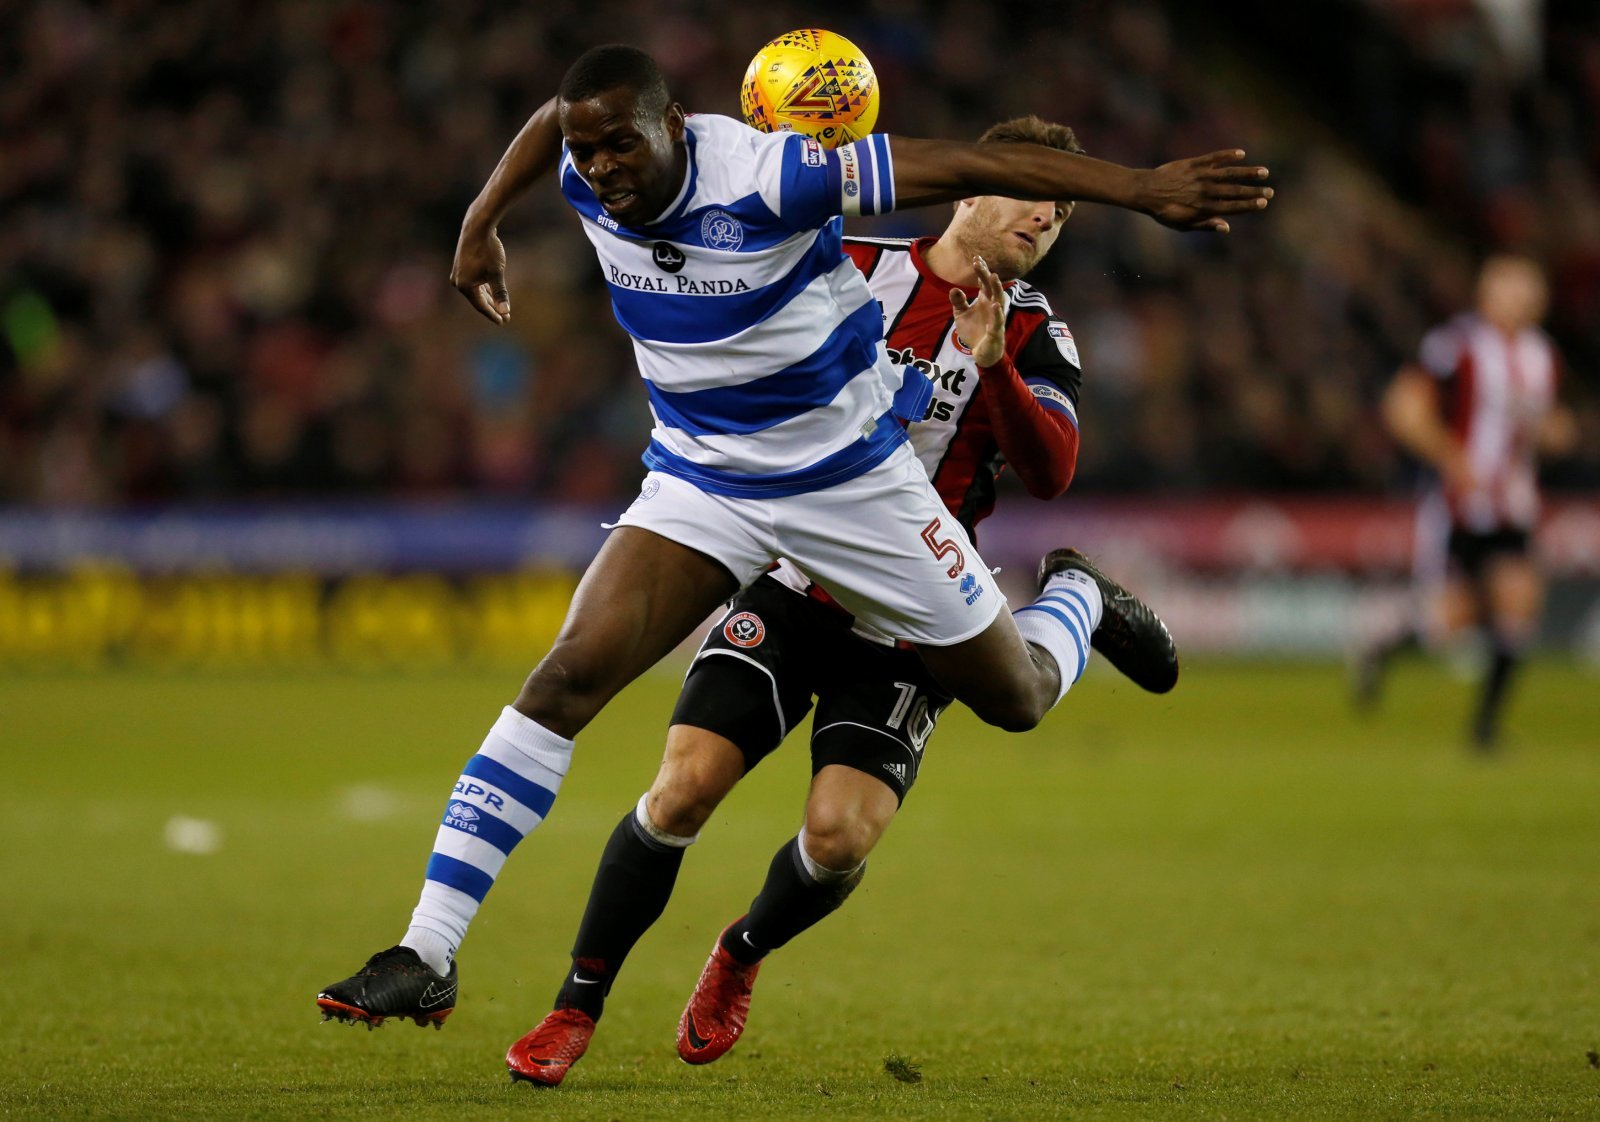 Celtic must seek to make a move for free agent Nedum Onuoha